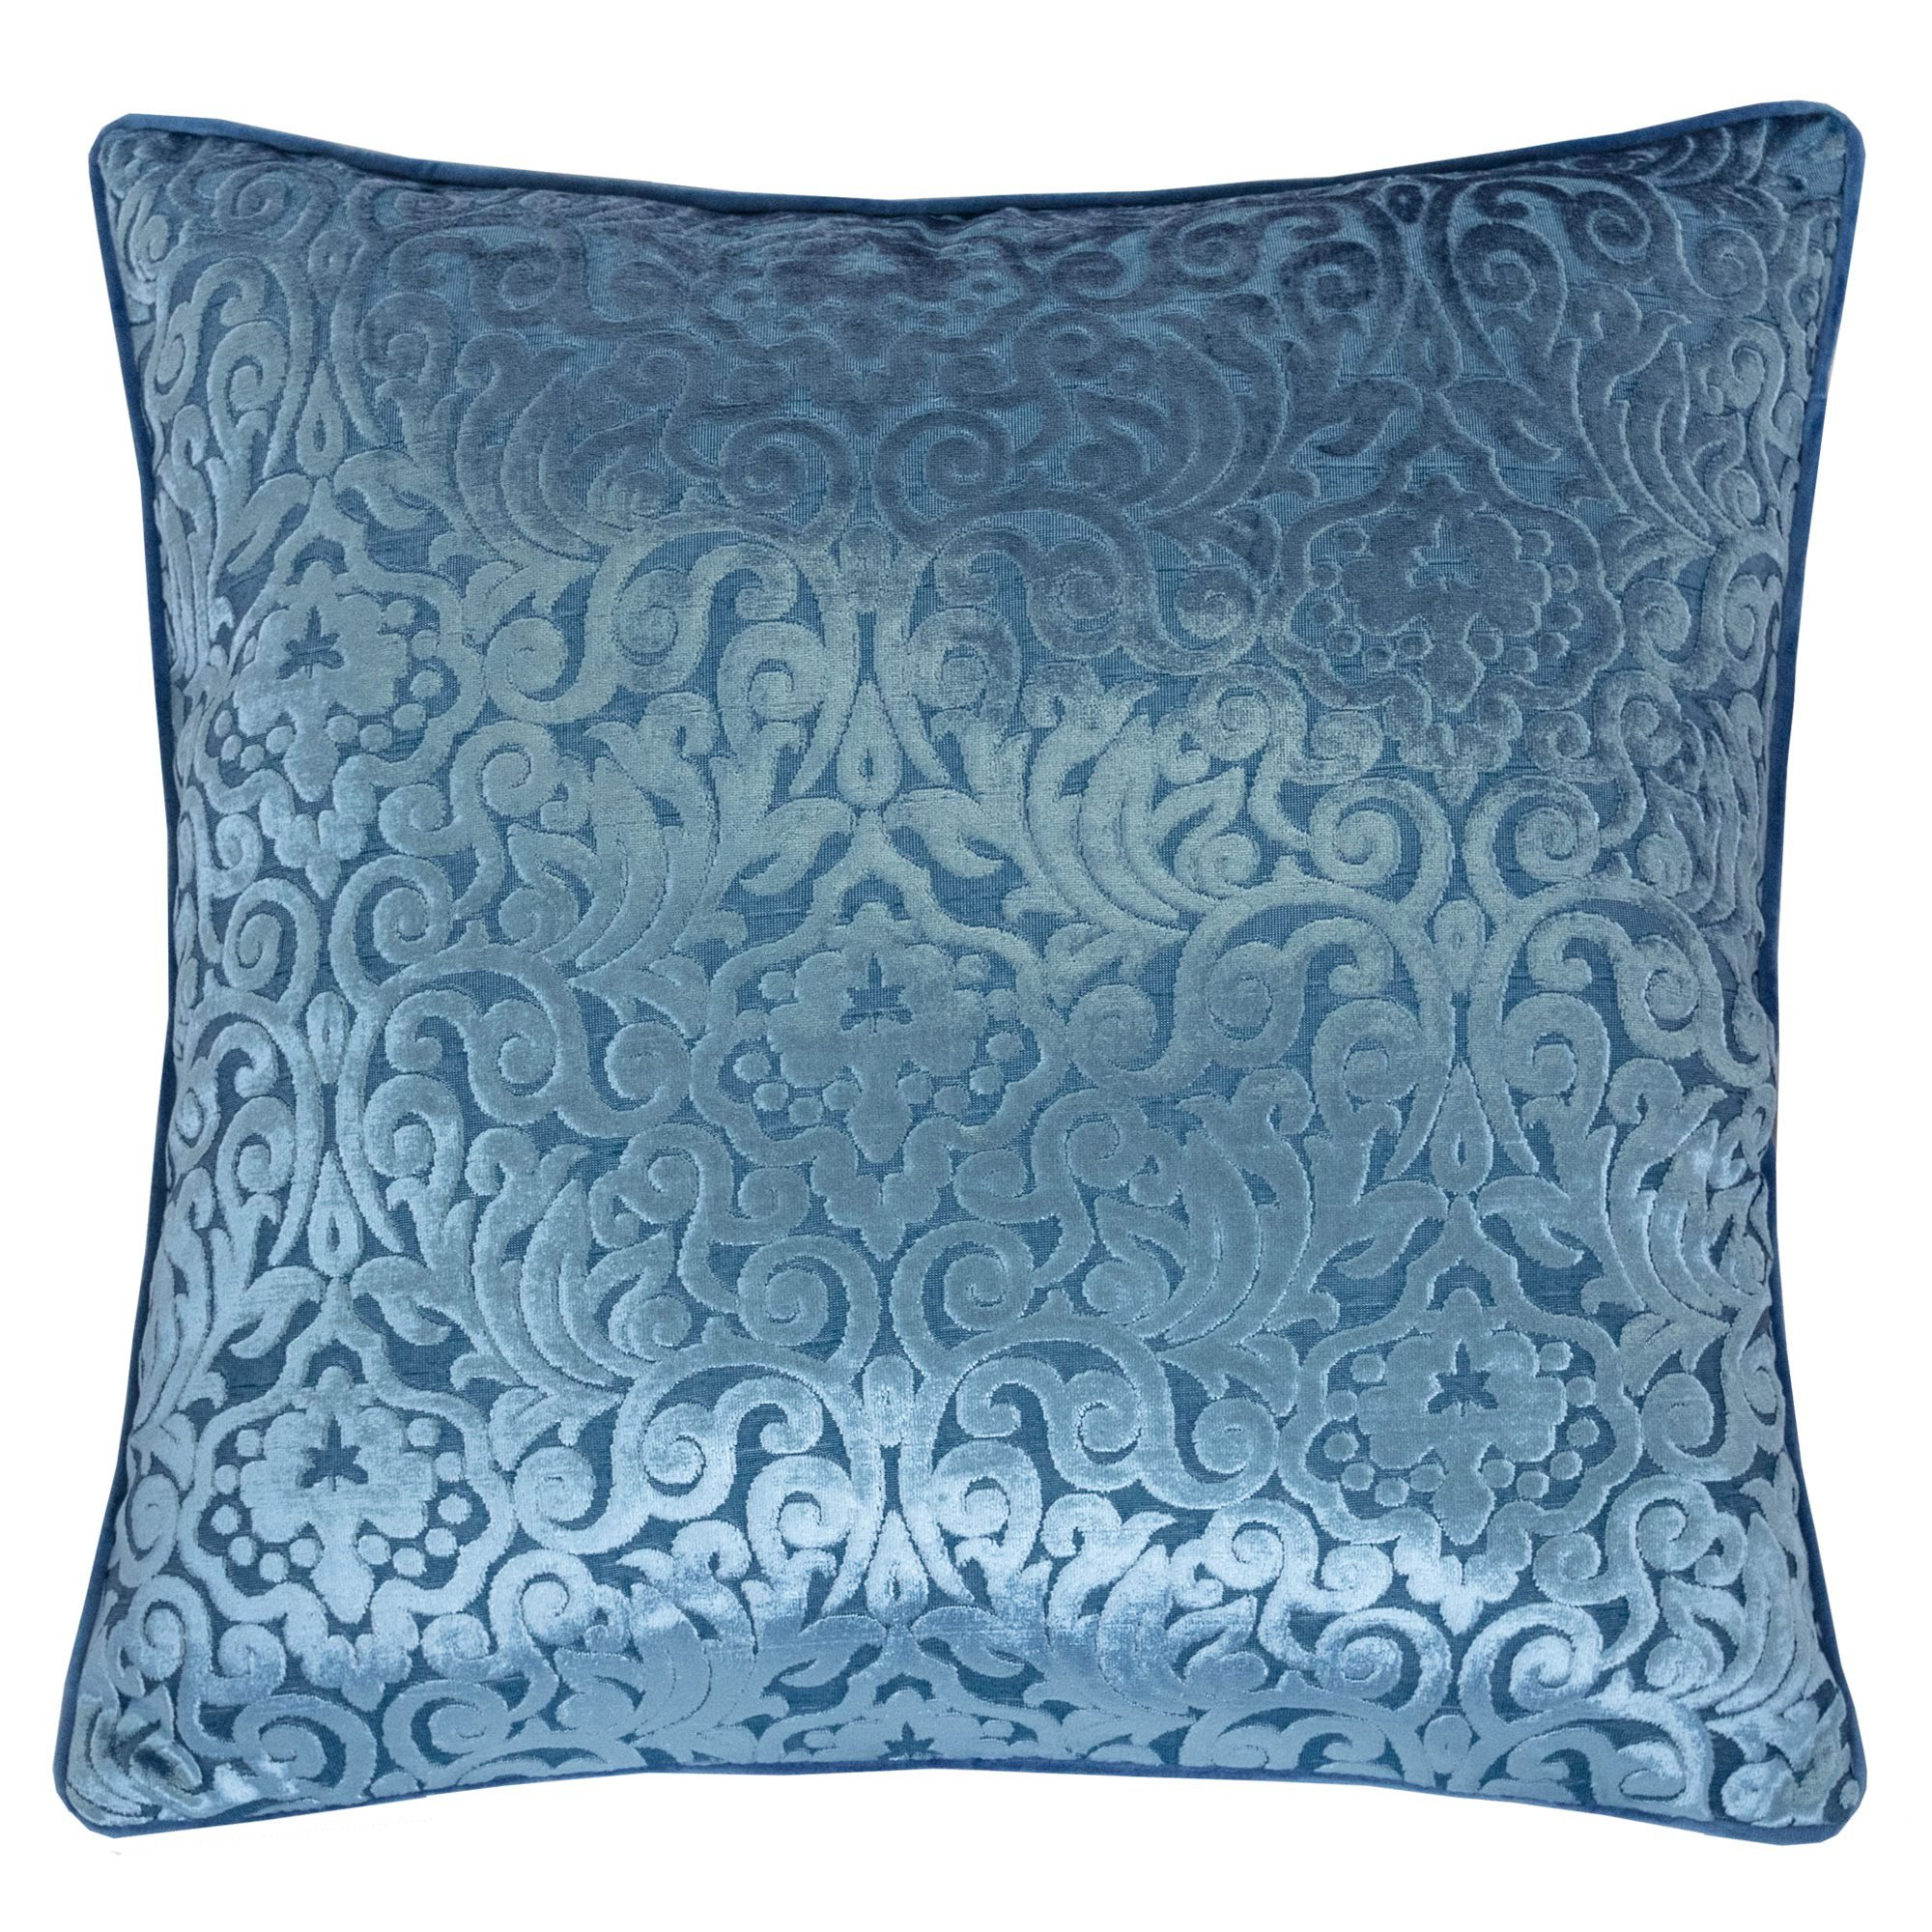 Homey Cozy Modern Velvet Throw Pillow Cover,Spa Blue Luxury Elegant Floral Soft Fuzzy Cozy Warm Slik Decorative Square Couch Cushion Pillow Case 20 x 20 Inch, Cover Only